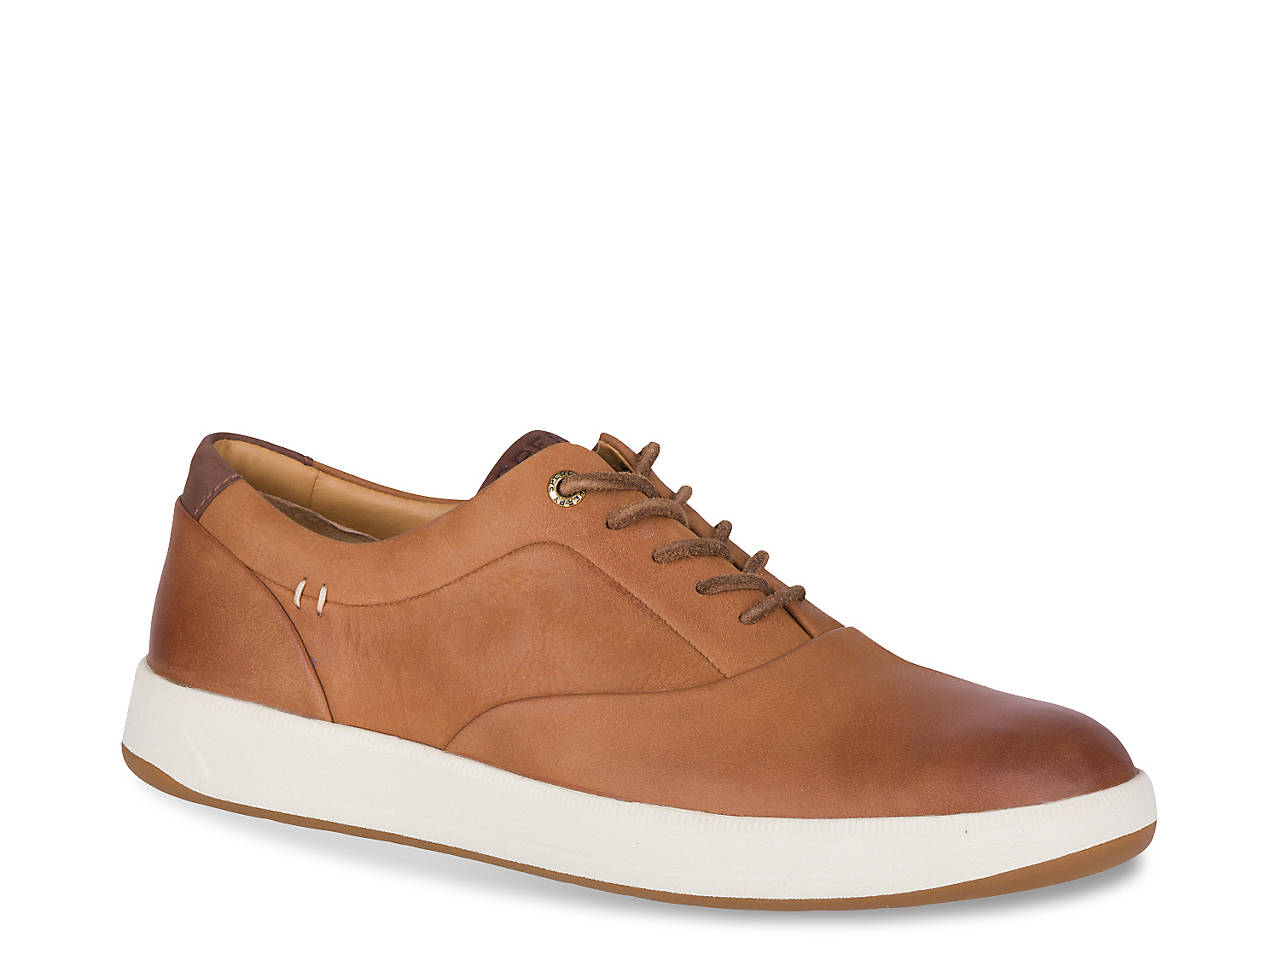 841c2ca46728 Sperry Top-Sider Gold Cup Richfield CVO Sneaker Men s Shoes